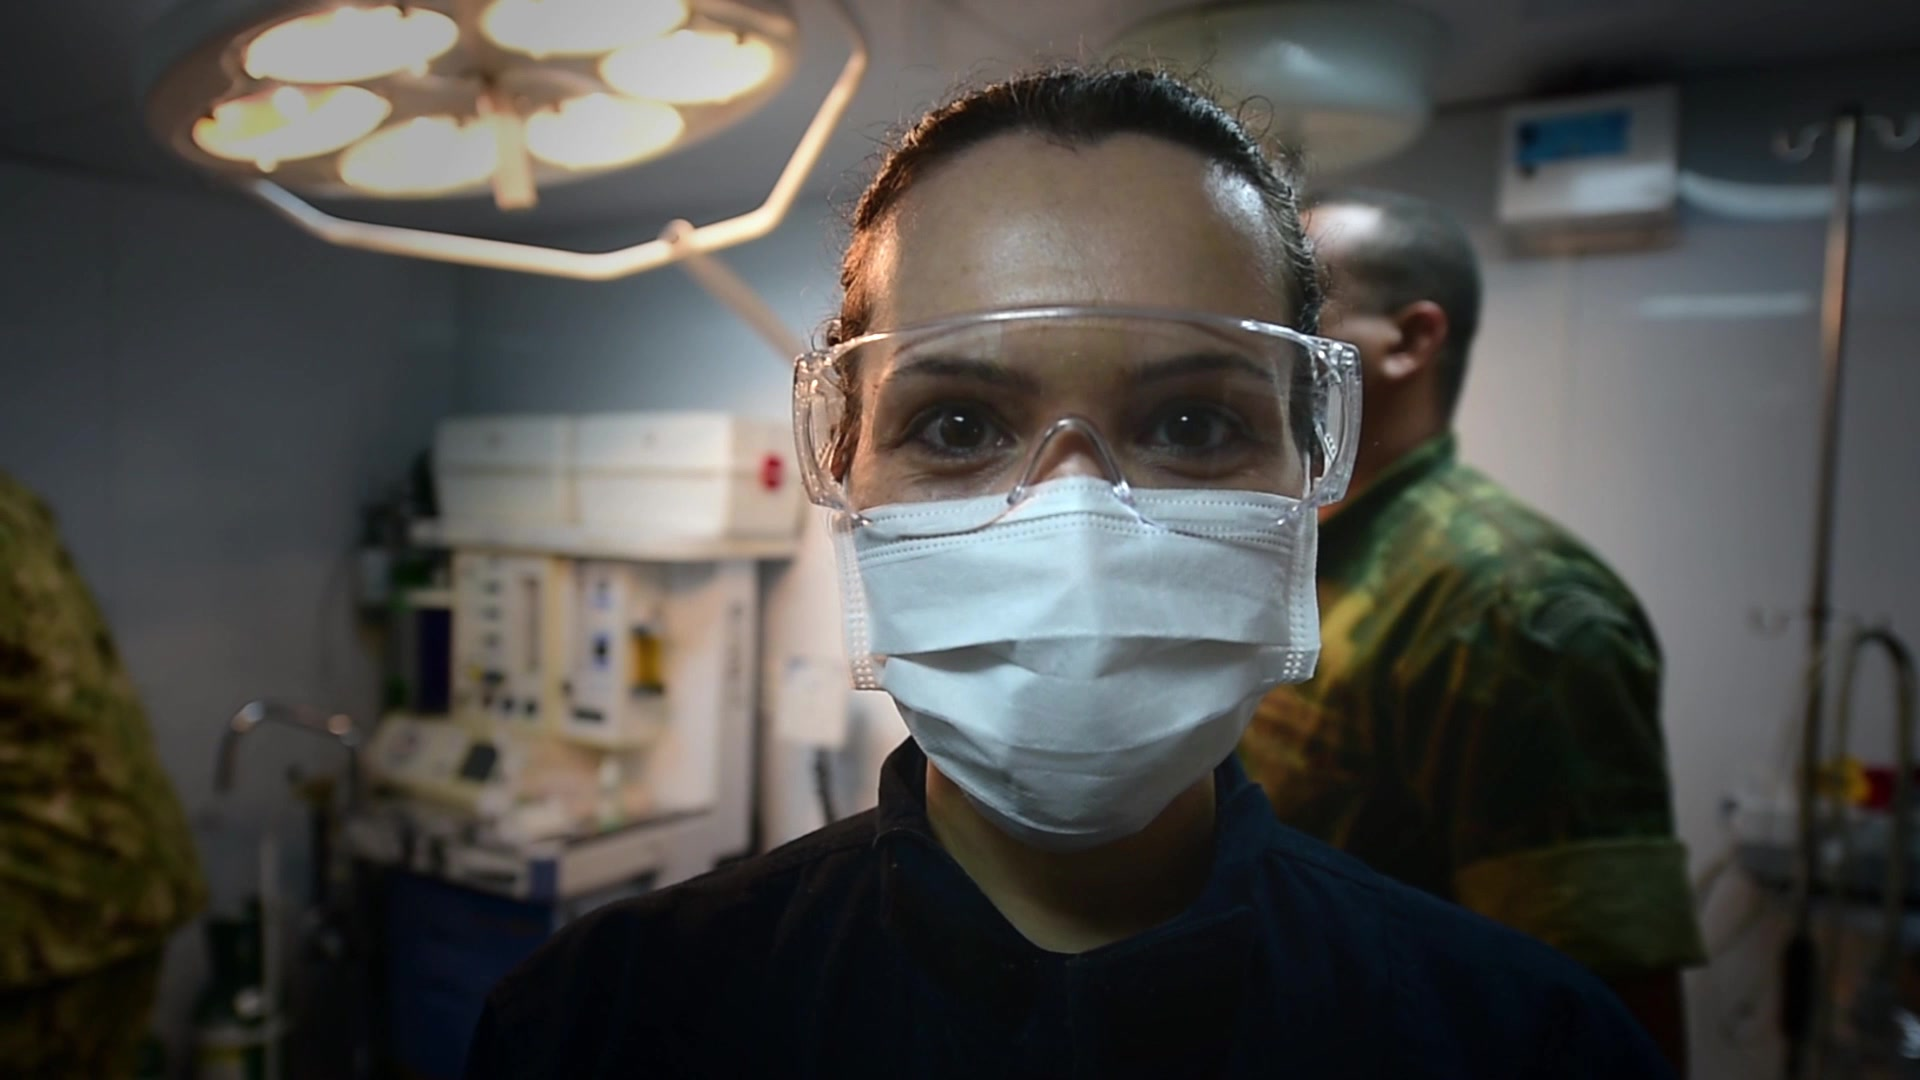 U.S. Navy doctors recently returned from a month-long humanitarian mission along the Amazon River in Brazil.